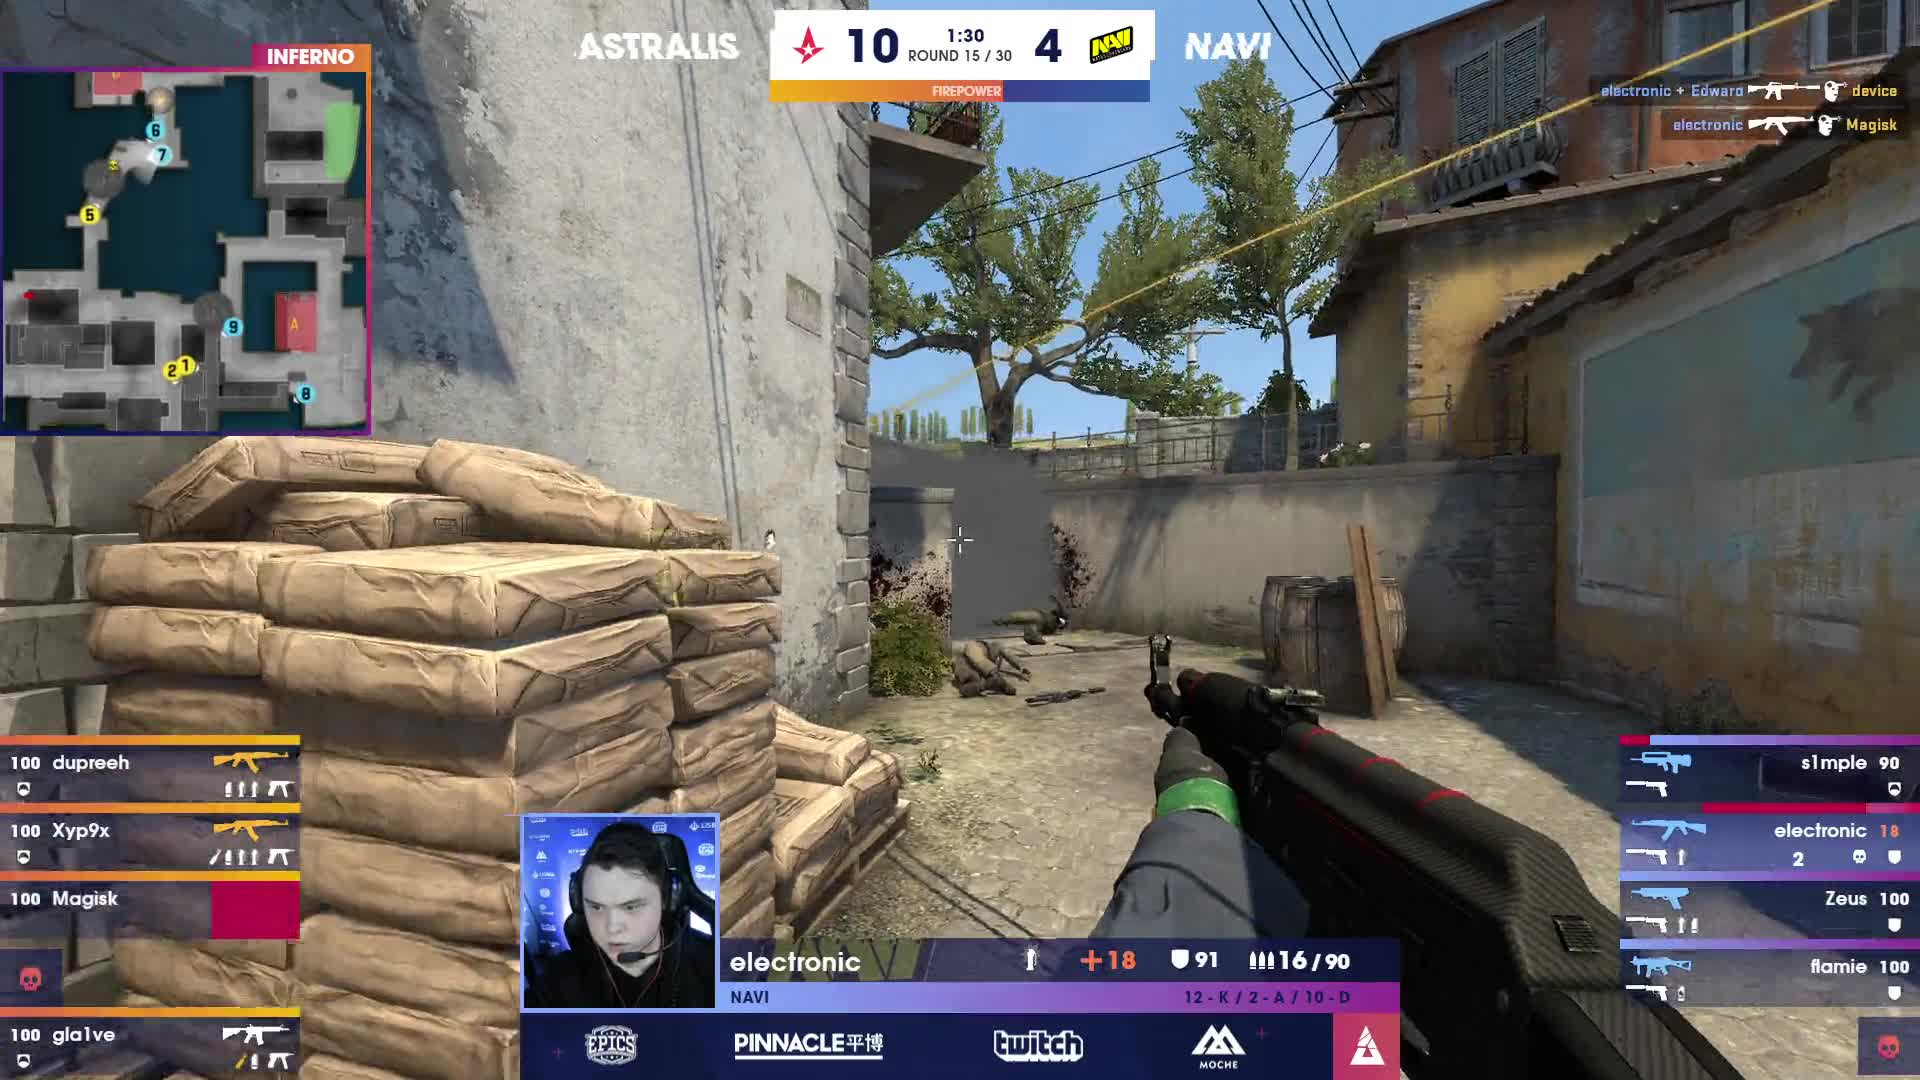 Look at Gla1ve's eyes just starring at the radar